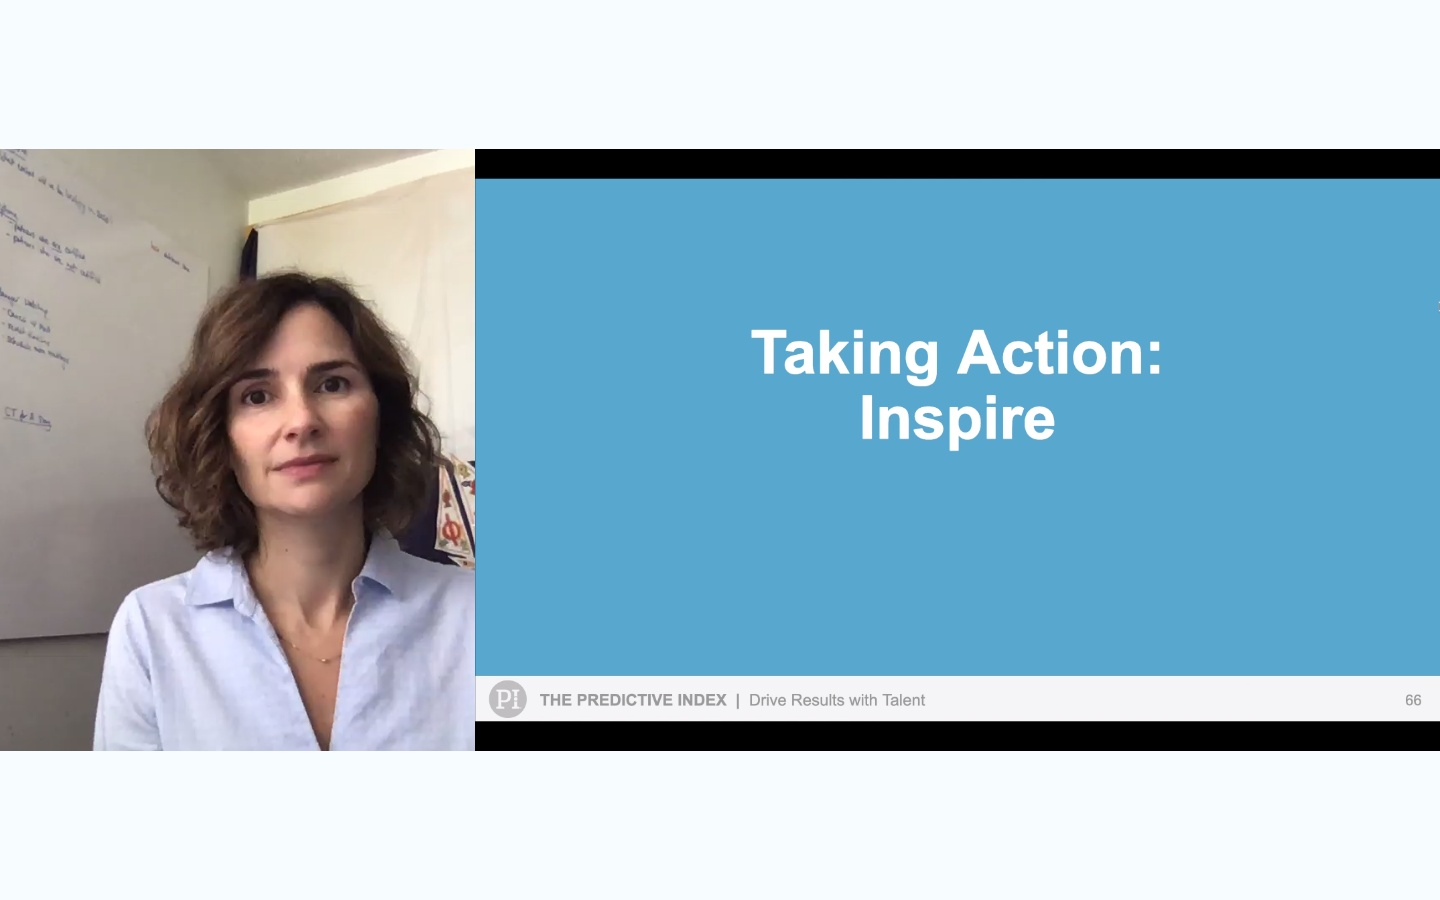 Drive Results with Talent Workshop - 8. Taking Action Inspire